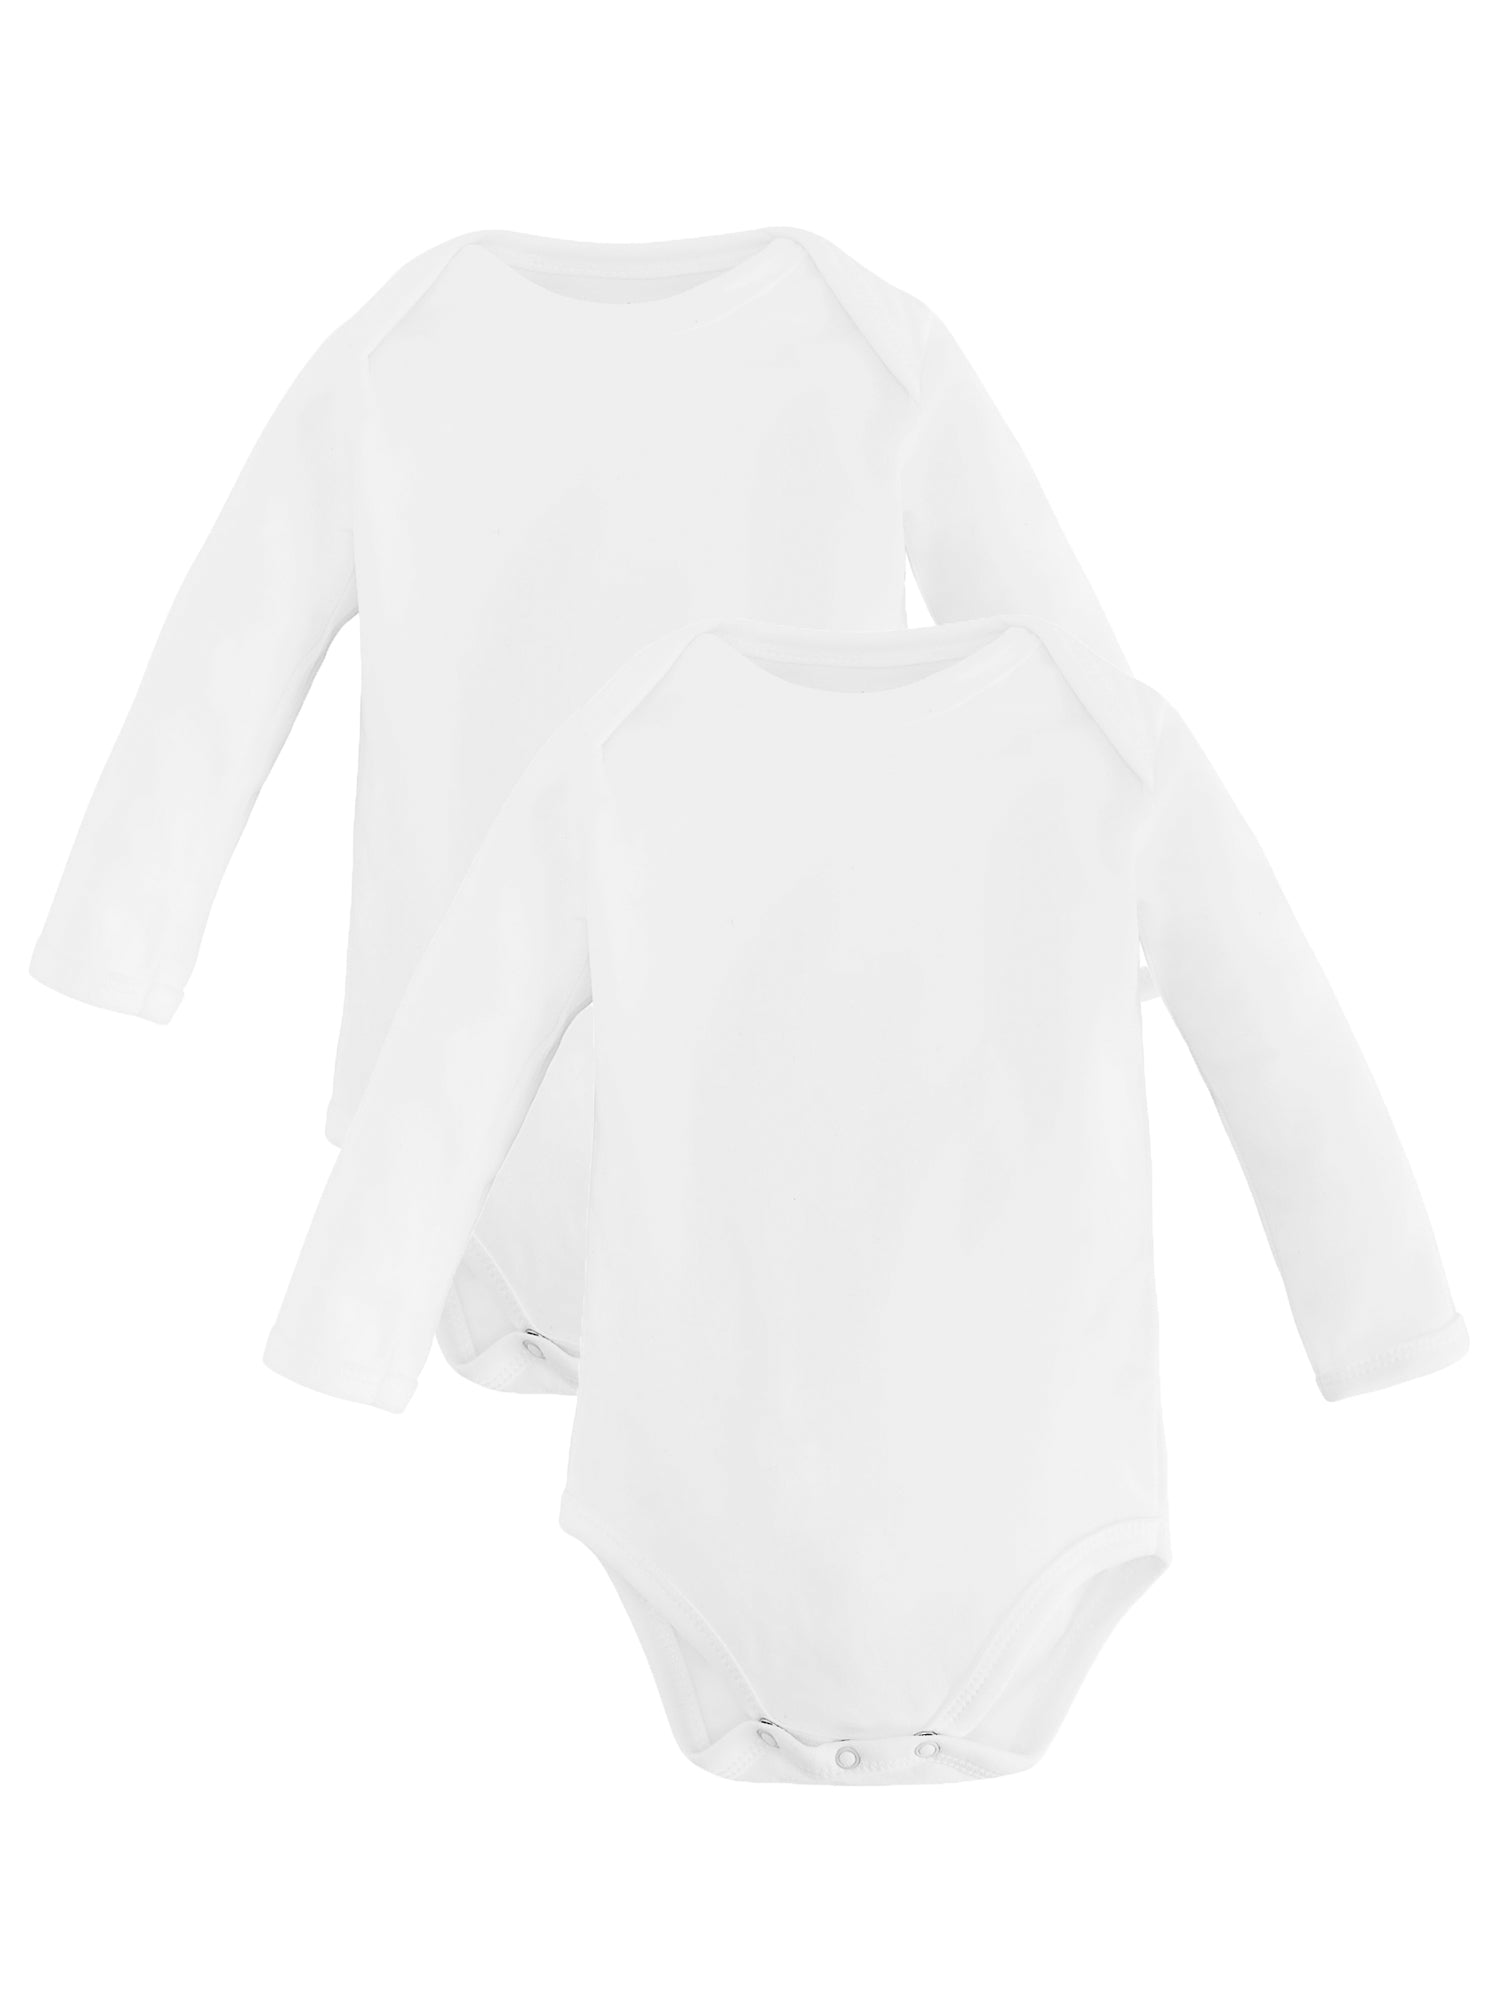 Long Sleeve Lap Shoulder Bodysuit - Off White Value Pack